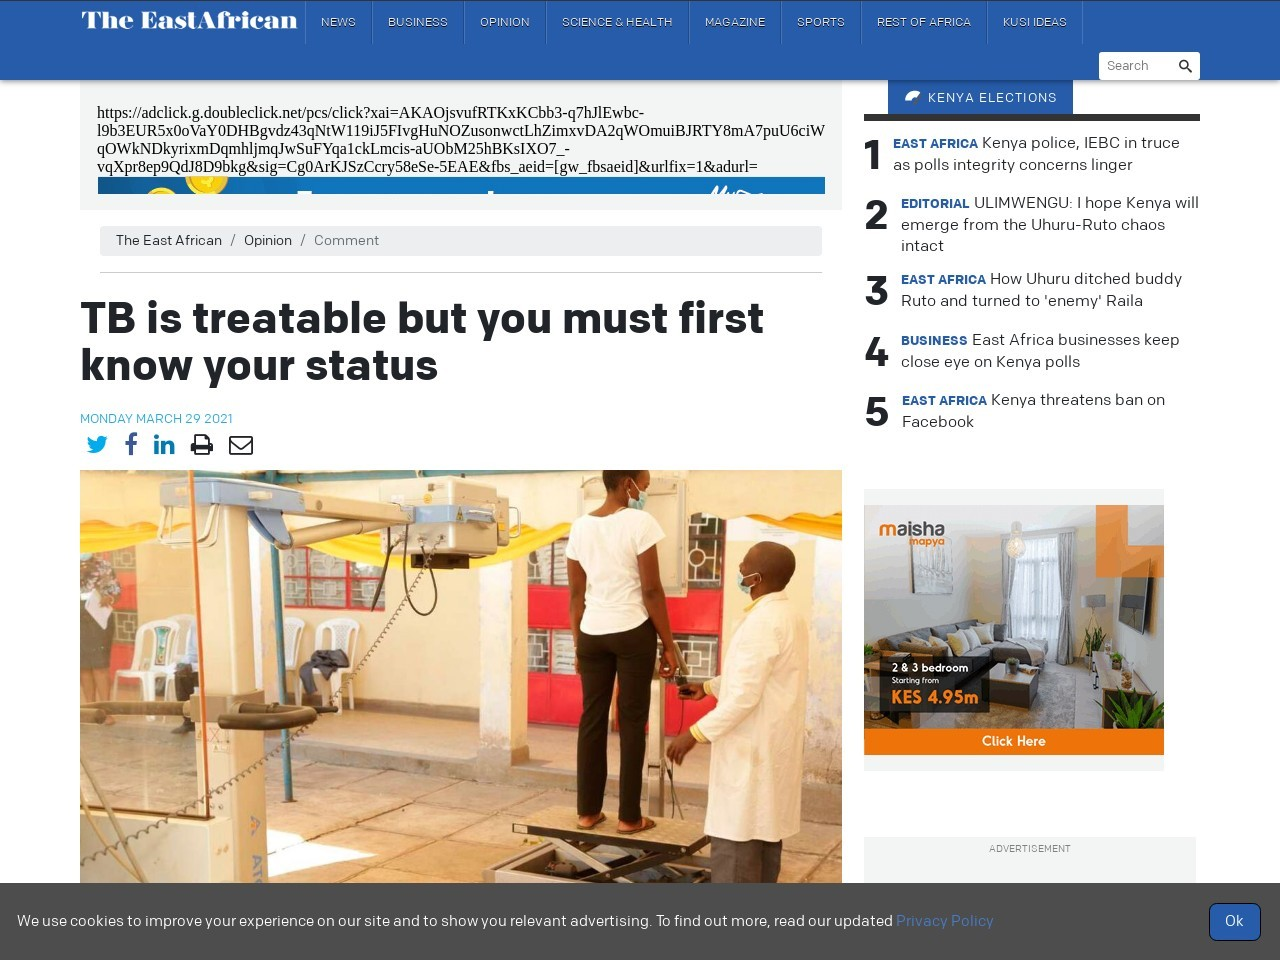 TB is treatable but you must first know your status